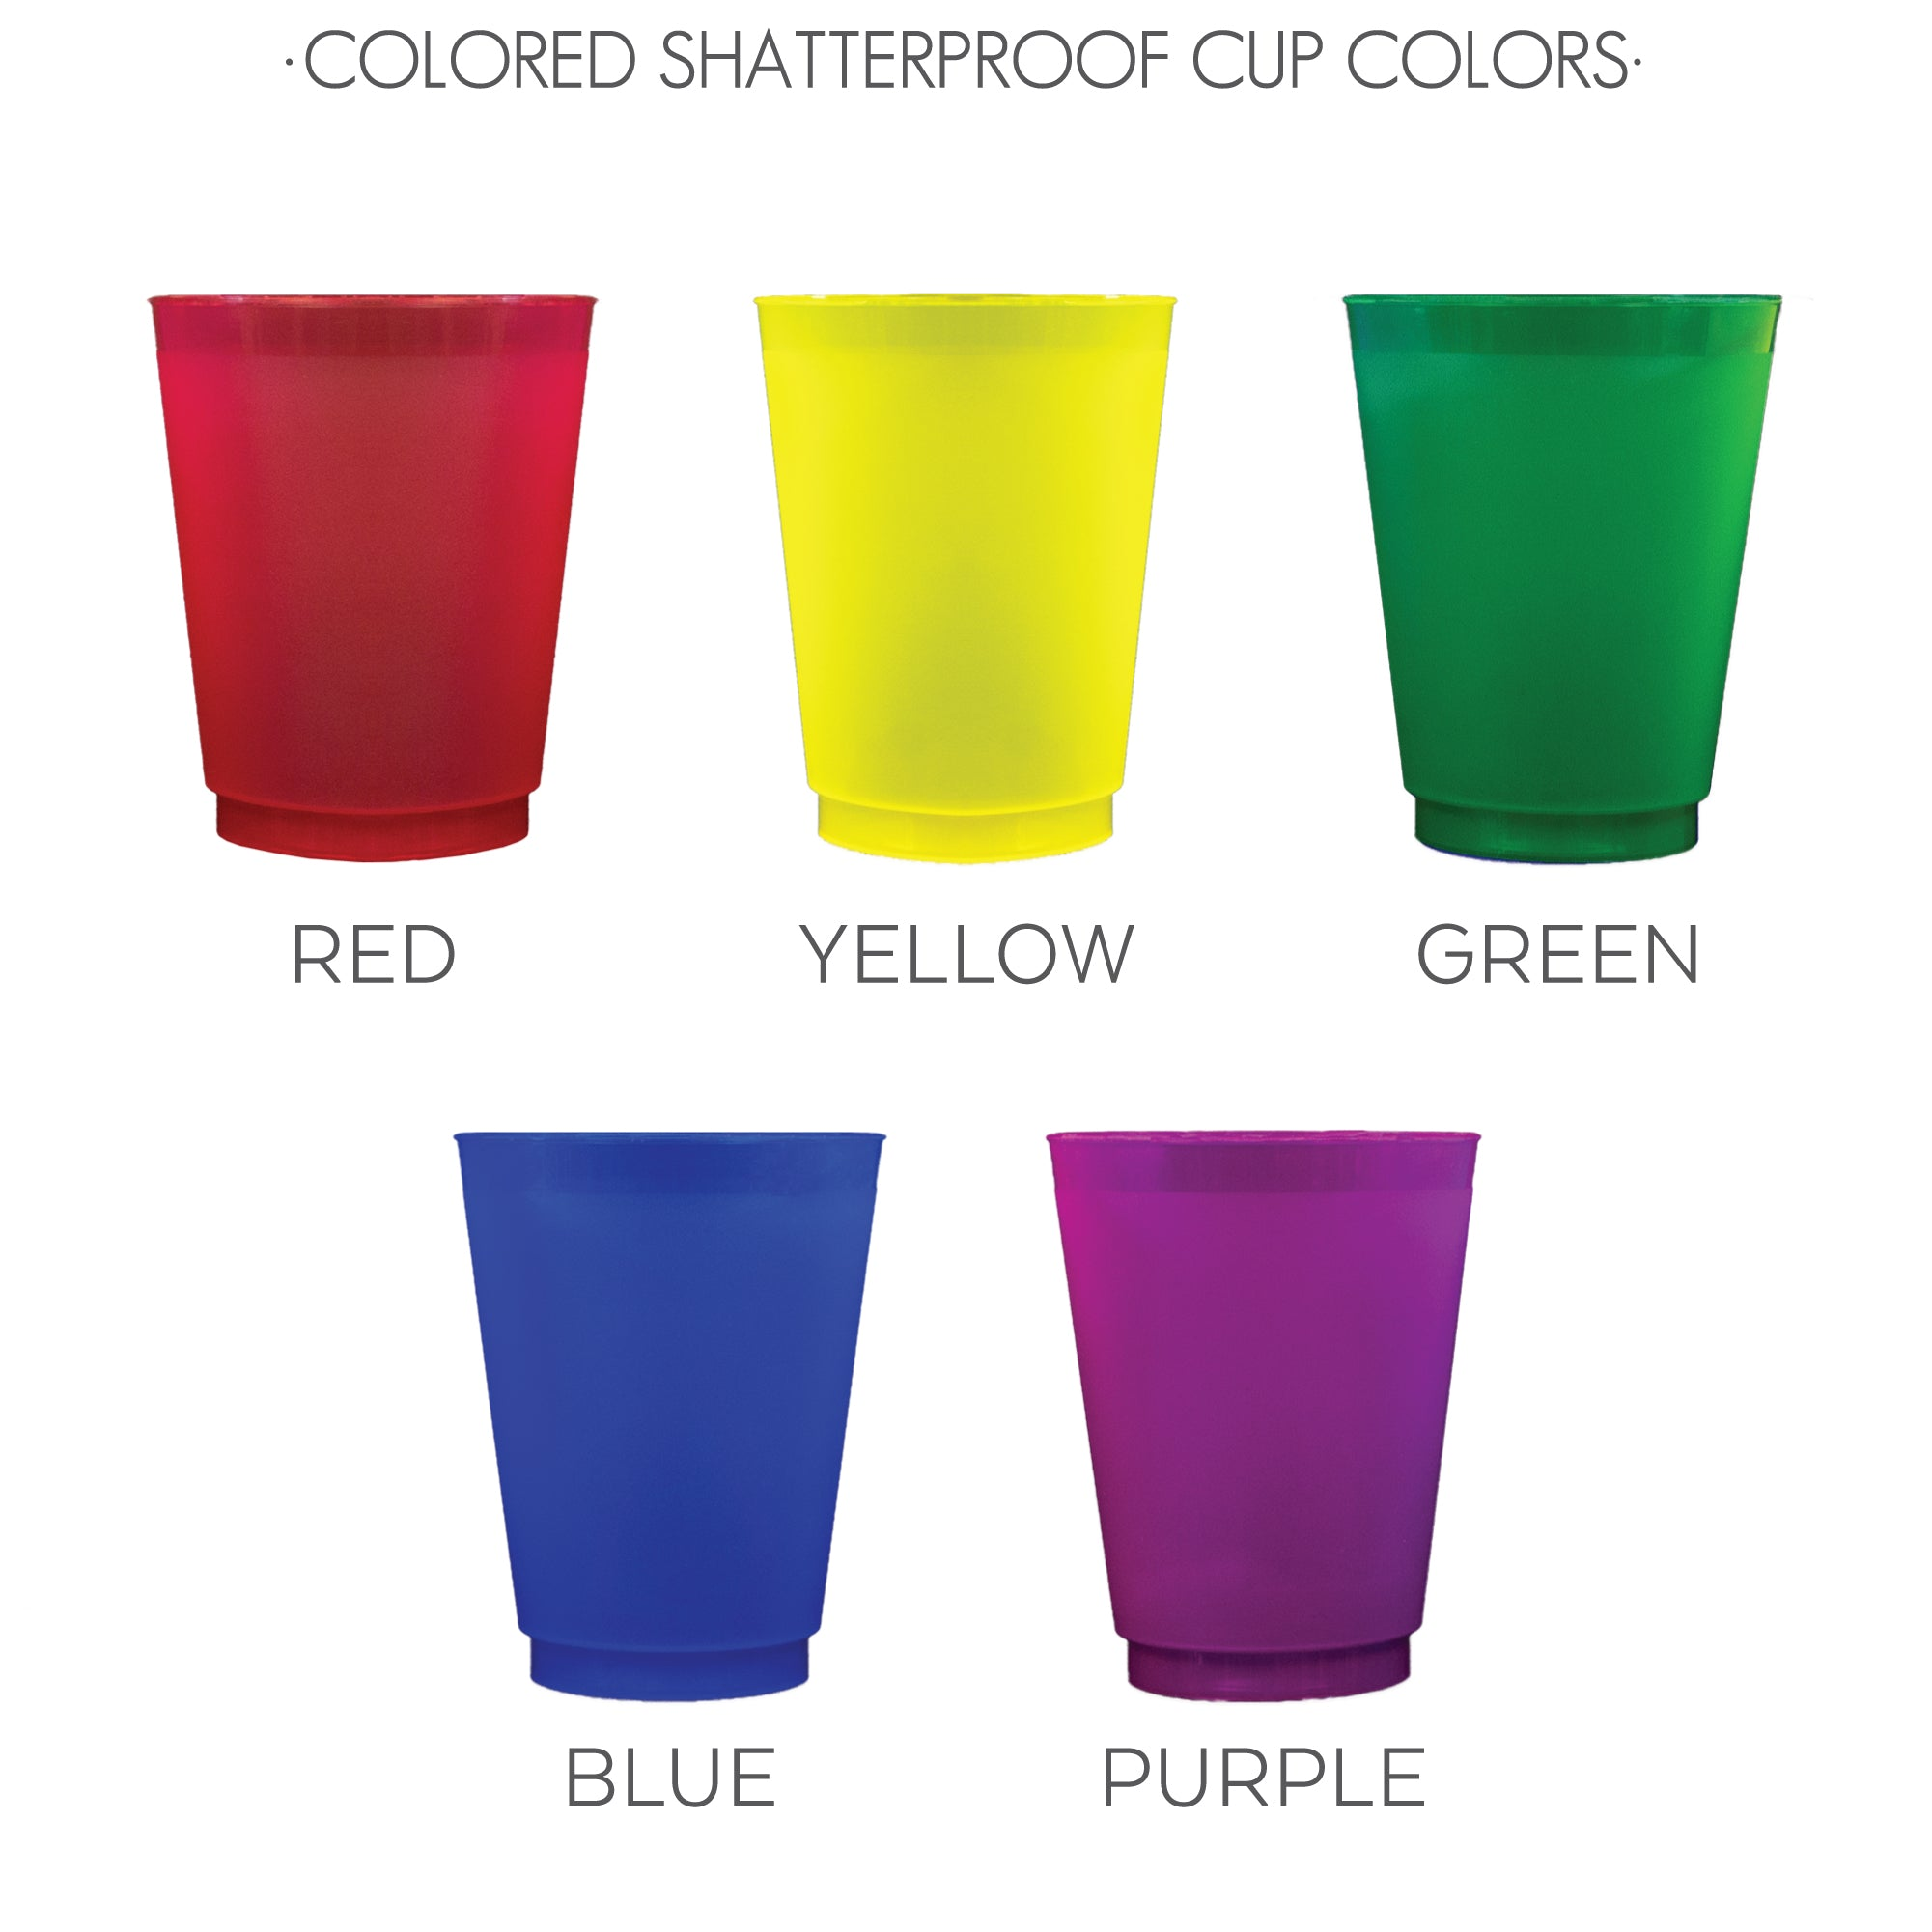 Colored Shatterproof Cup Colors